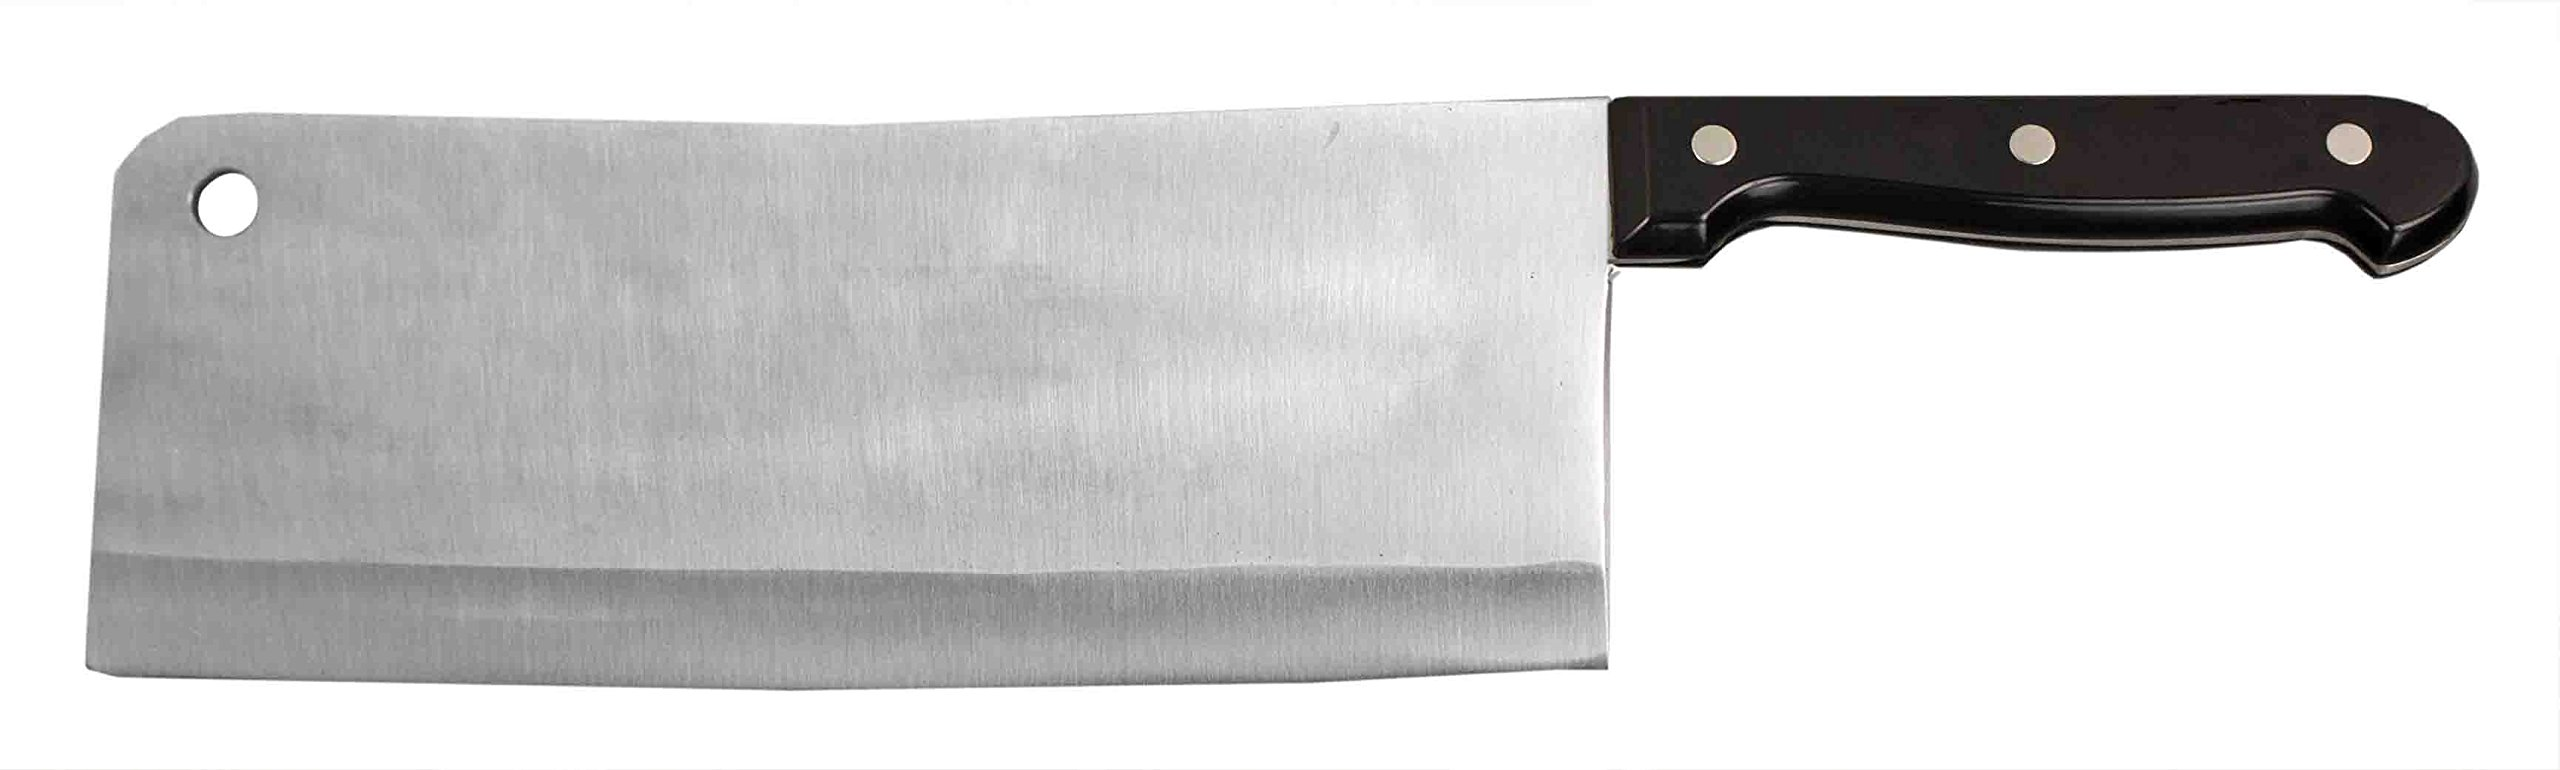 Home Basics 9'' Meat Chopper Cleaver with Stainless Steel Blade